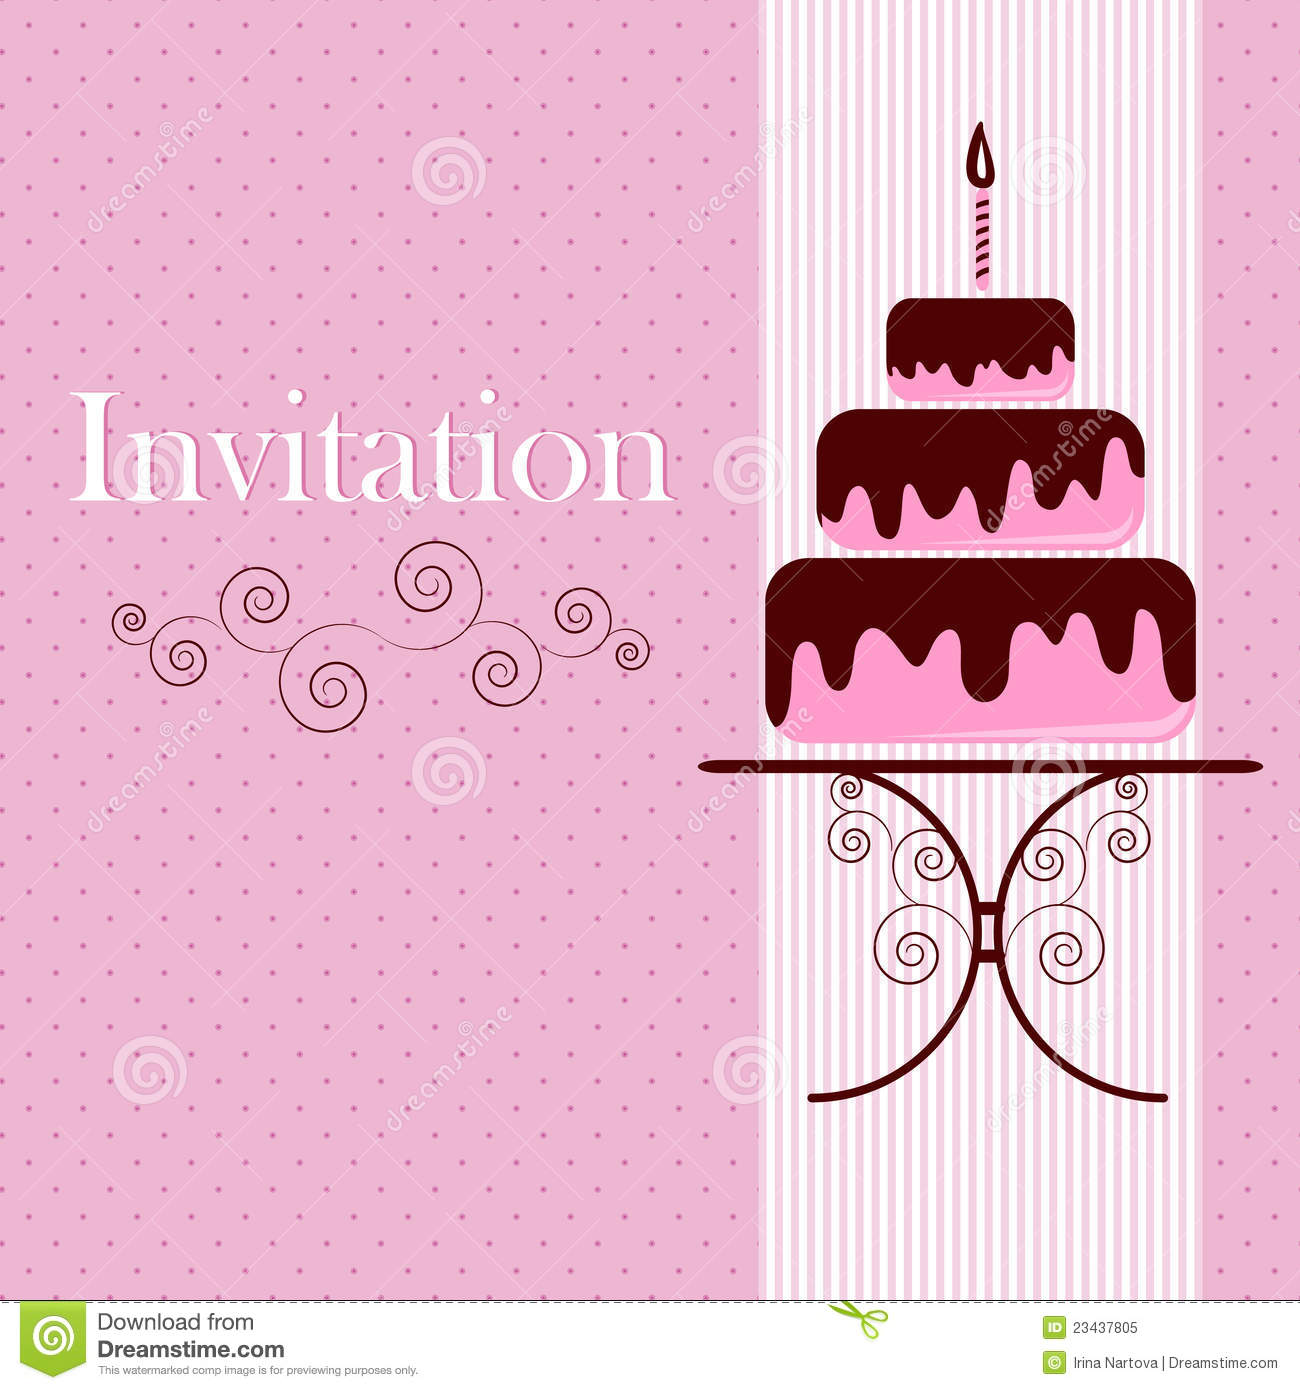 Invitation Card With Cake Stock Vector Illustration Of Copy 23437805